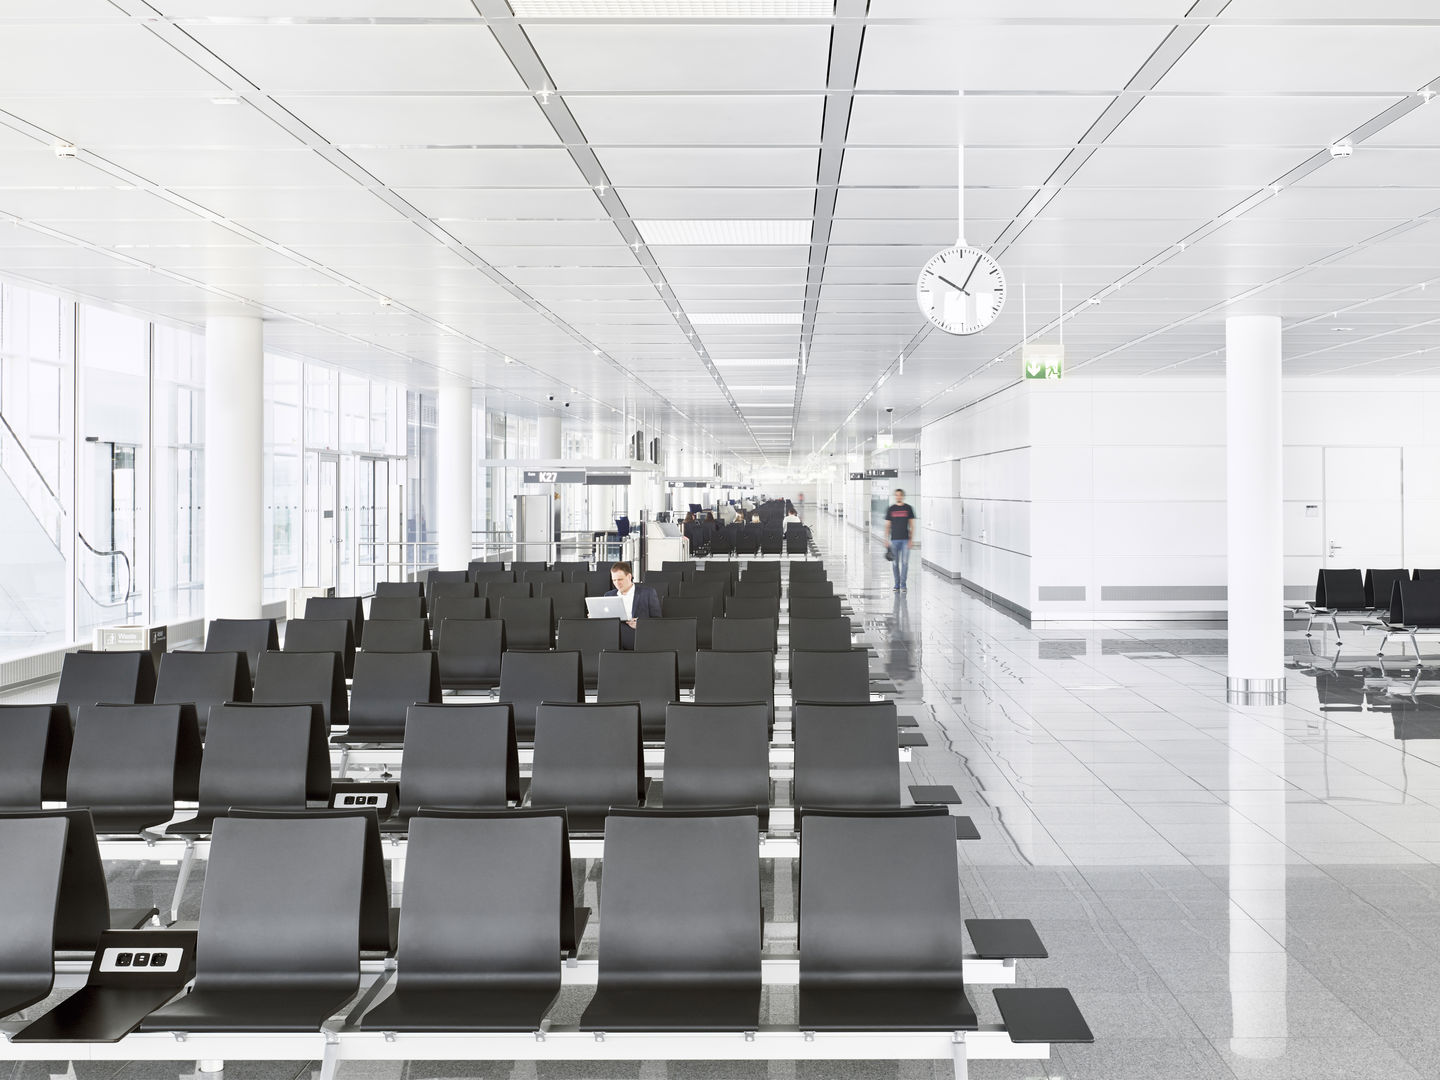 Munich airport set for new terminal satellite airport business